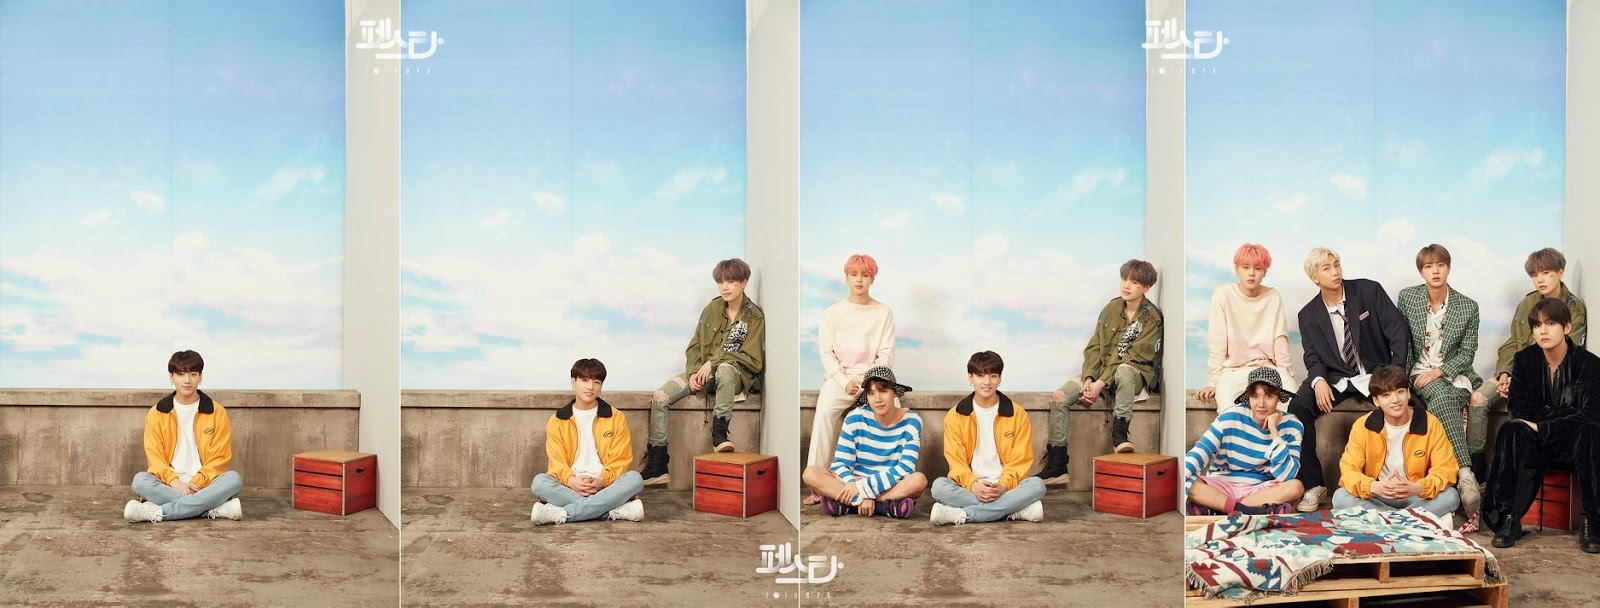 BTS May Be The Happiest Family You've Ever Seen In Their